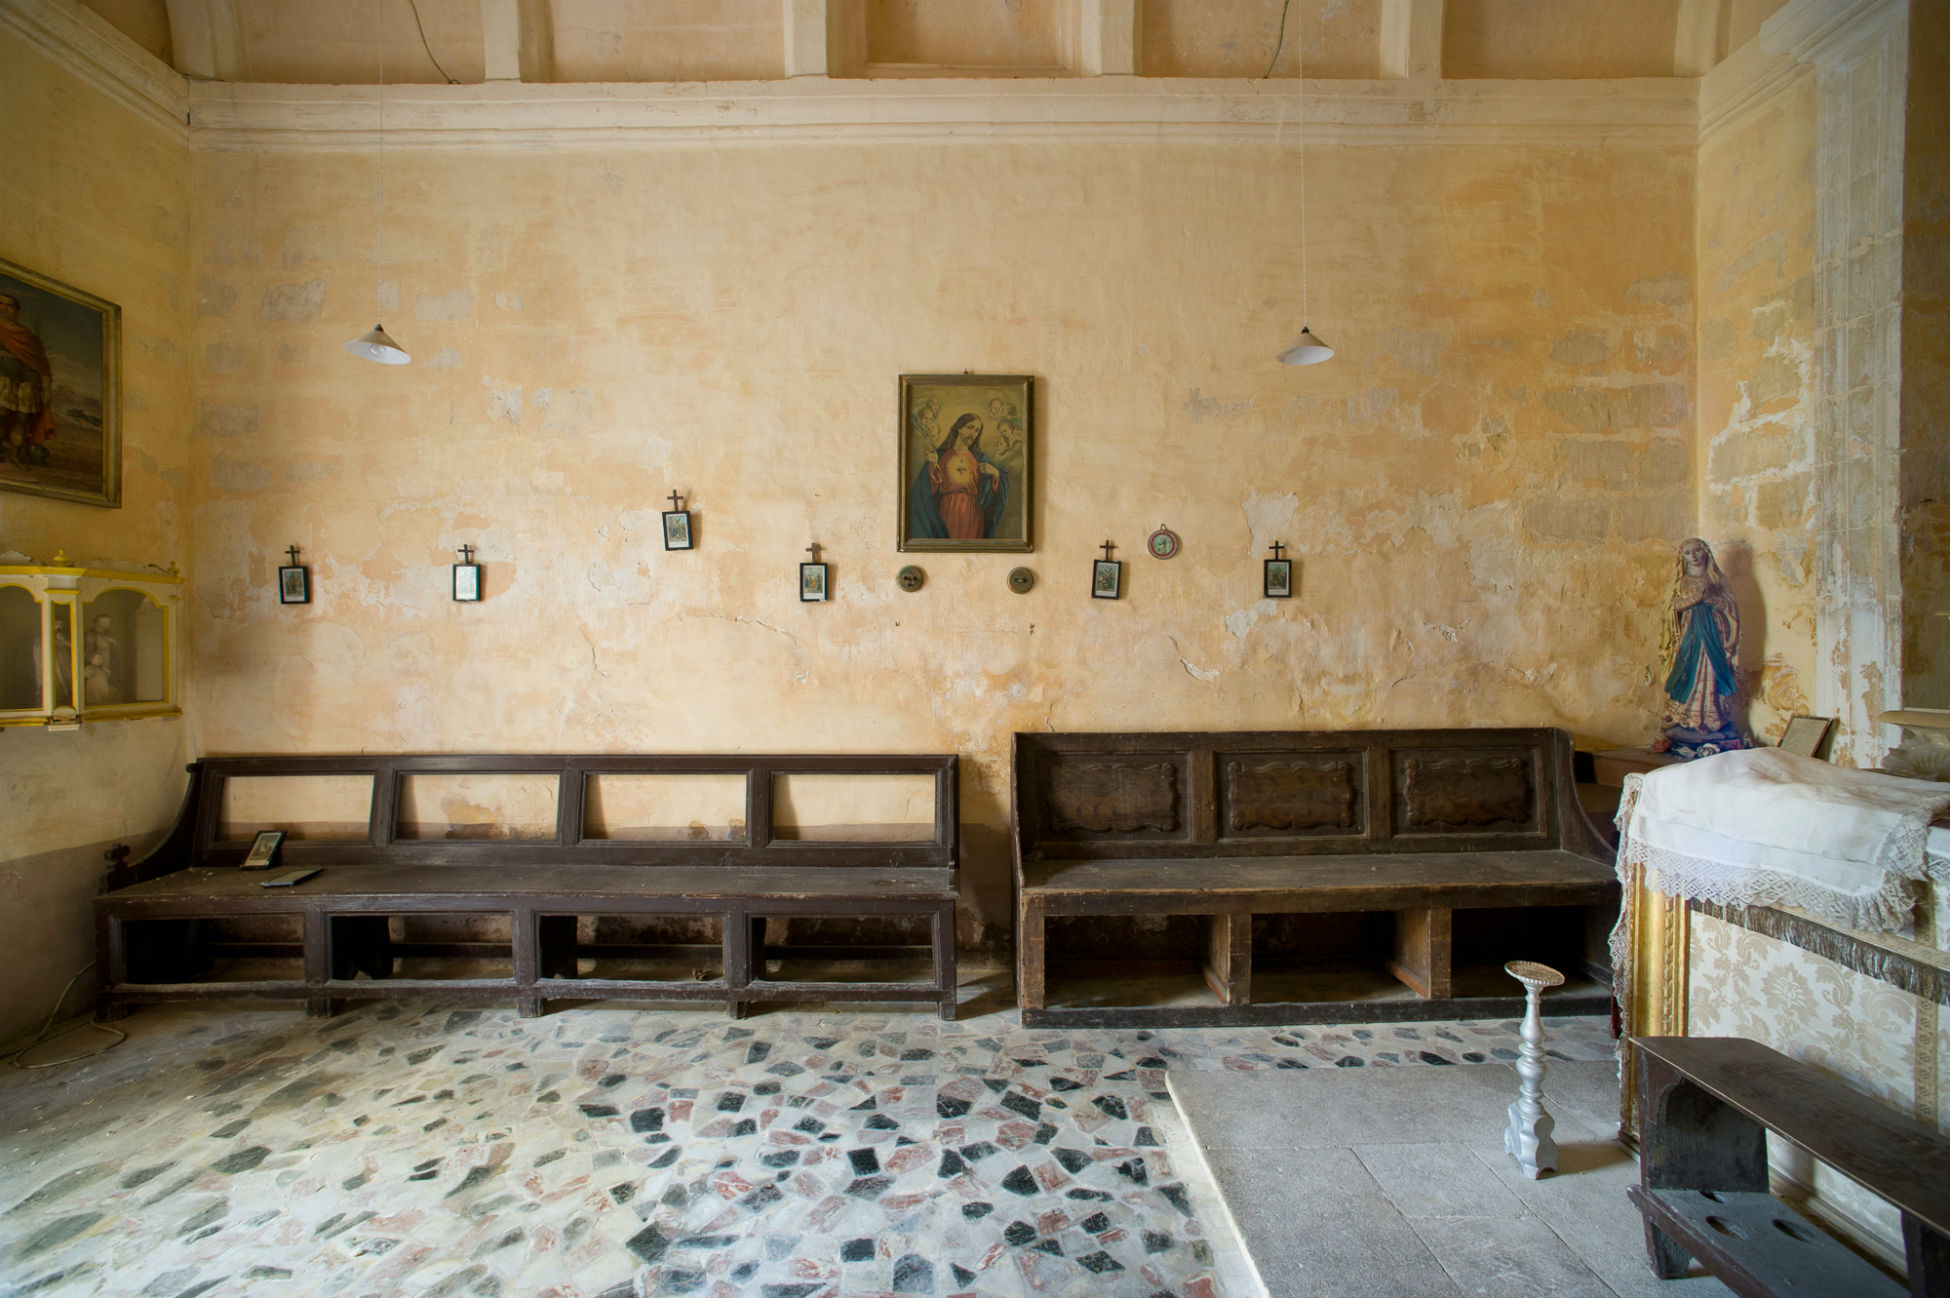 St_Peters_Chapel_2a.jpg